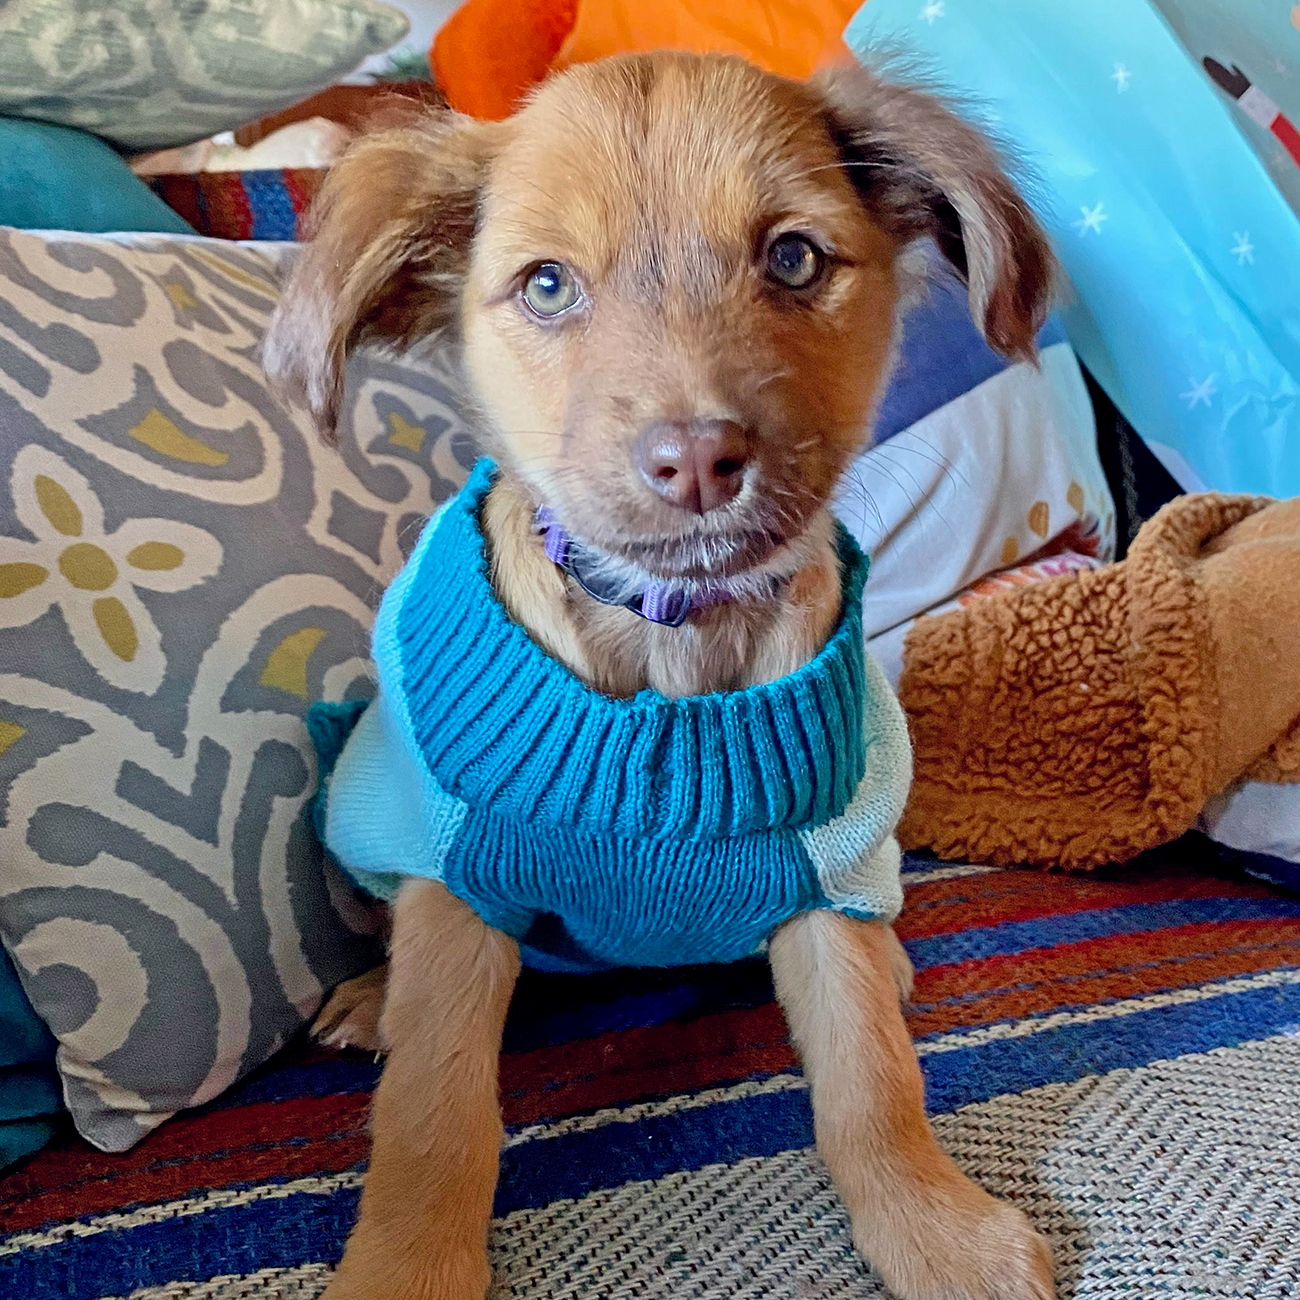 Puppy sits in blue dog sweater